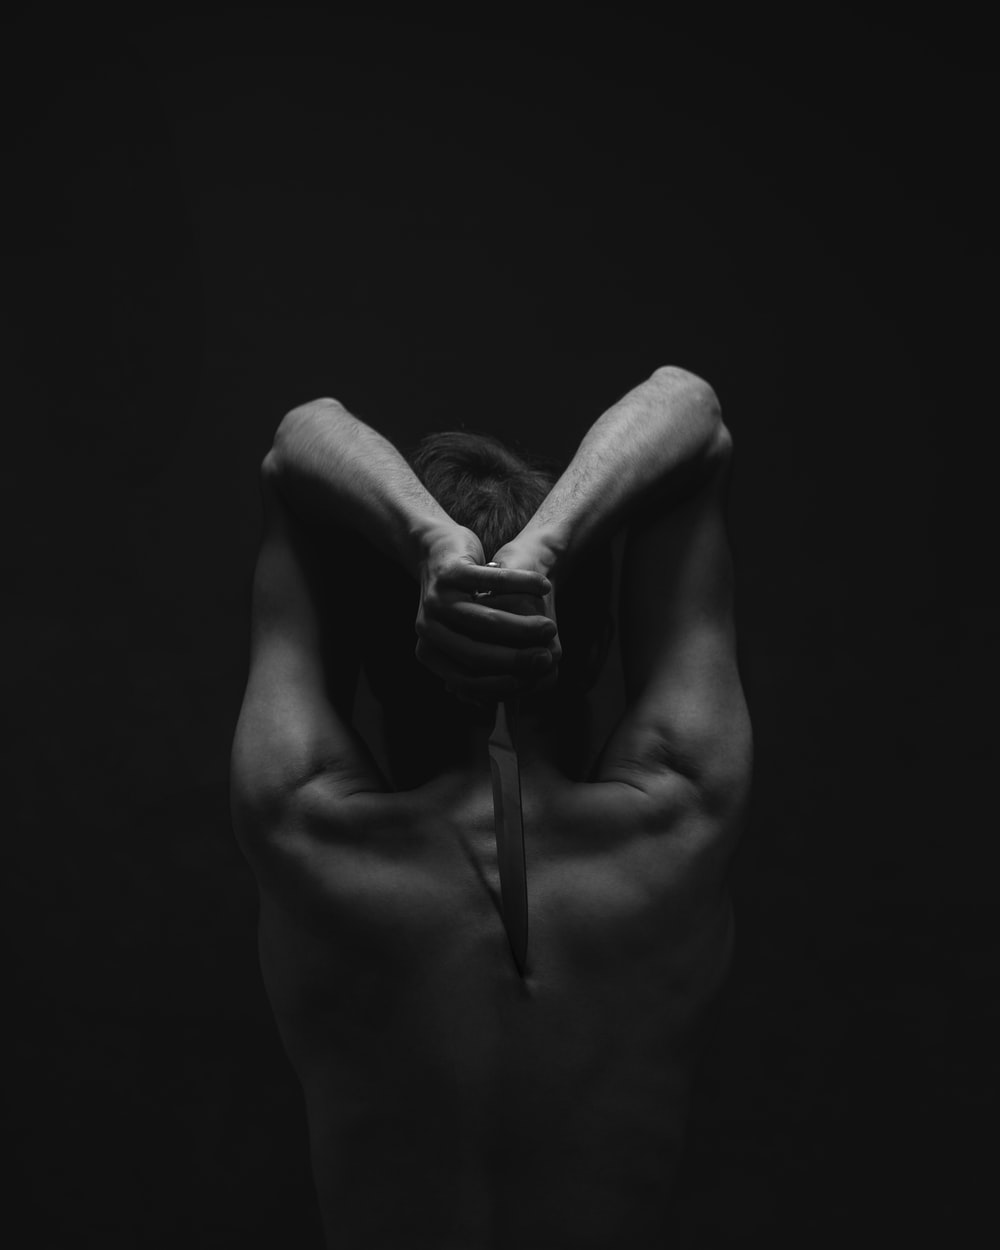 grayscale photography of person holding knife